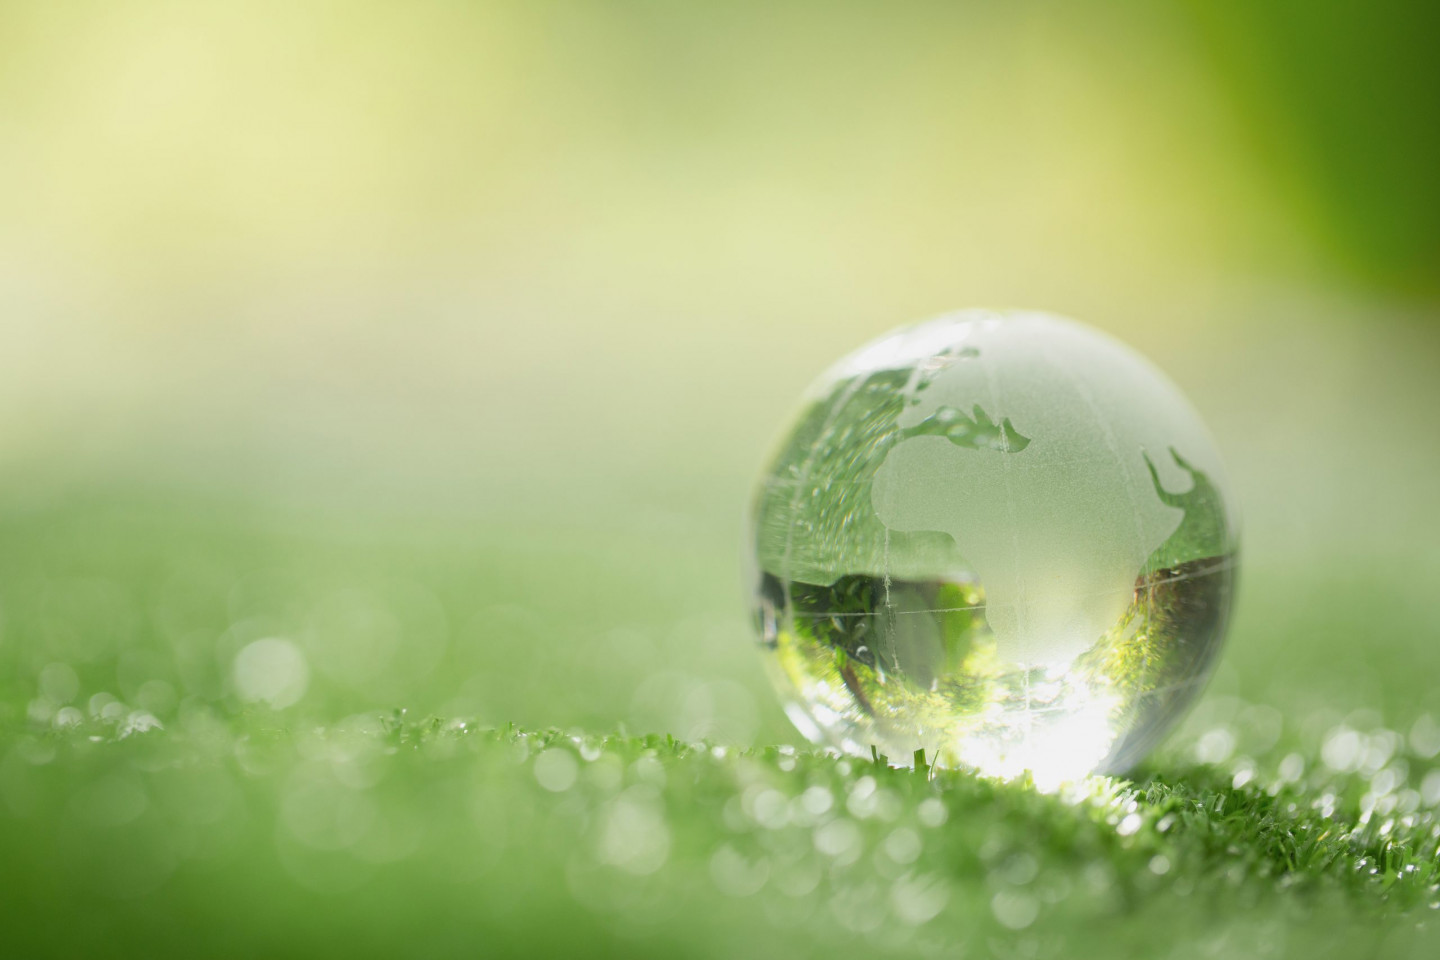 Close up of crystal globe resting on grass in a forest - environ